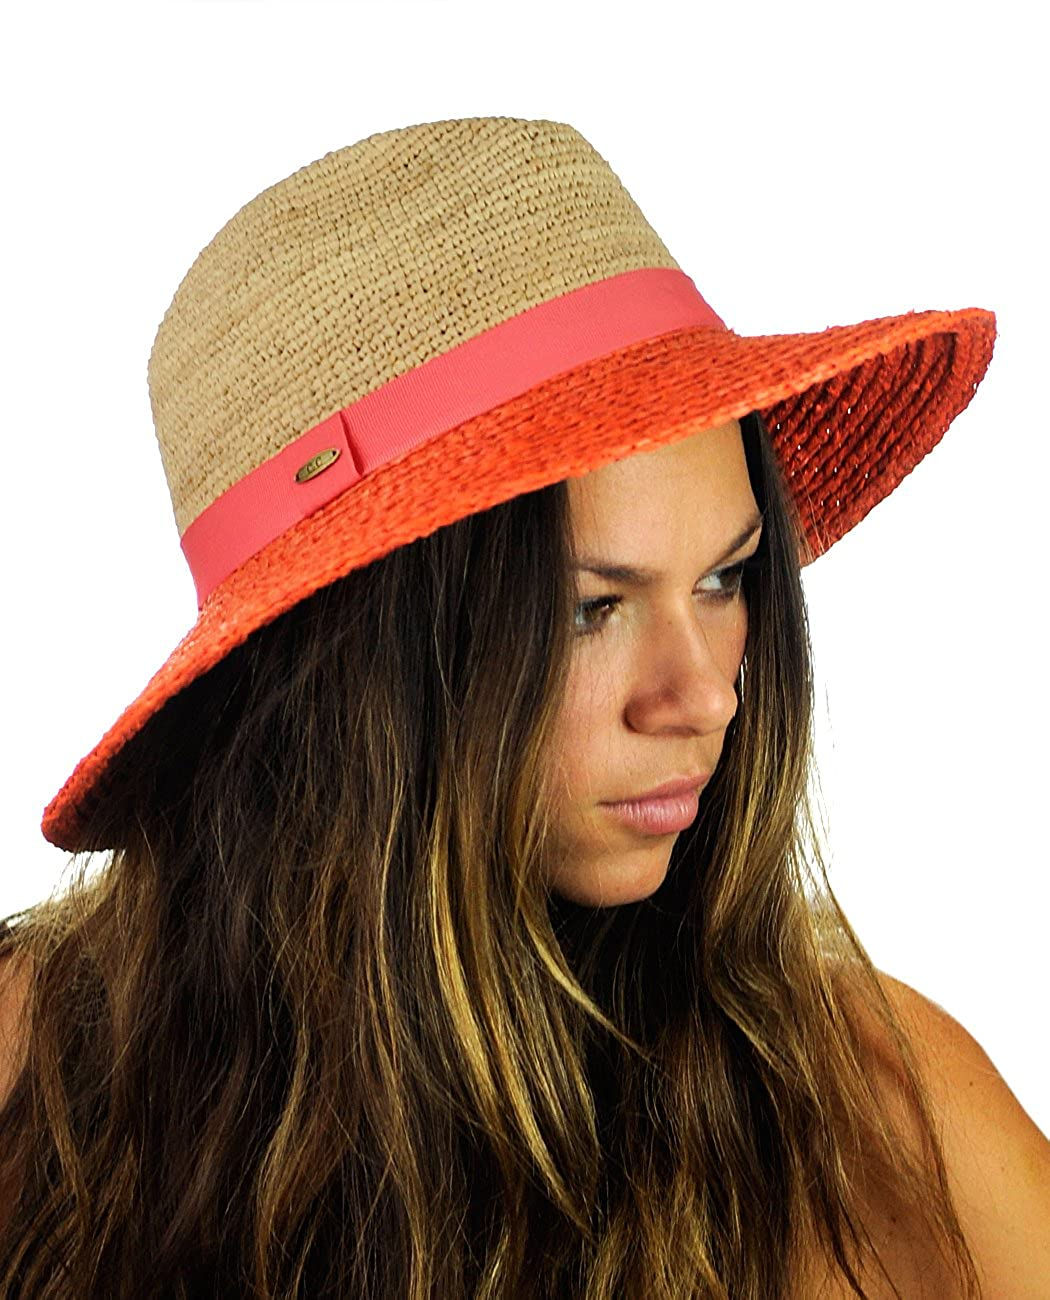 NYFASHION101 Solid Color Band Raffia Straw Weaved Panama Fedora Sun Hat YH1429-CORAL